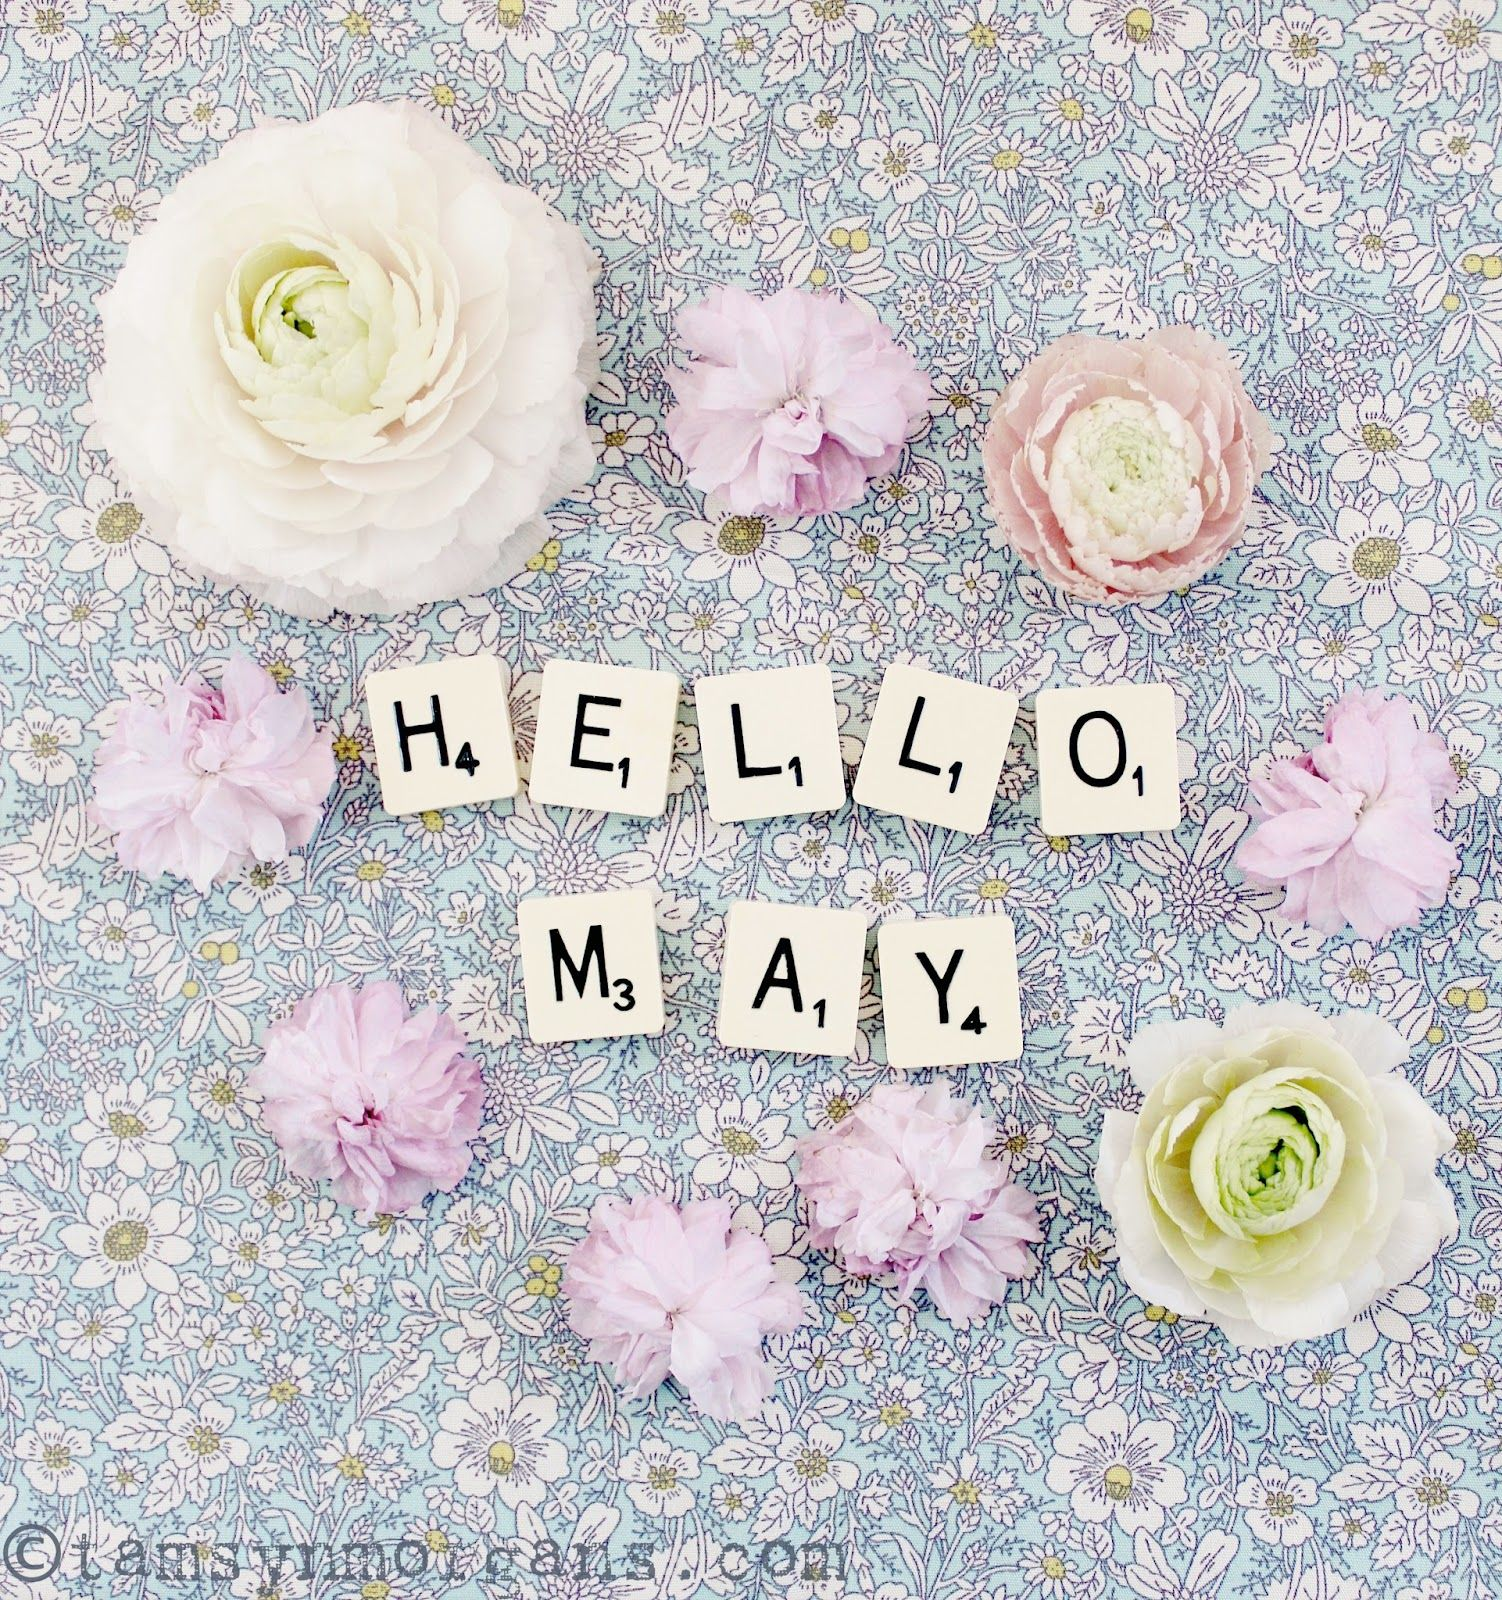 Hello everyone, Happy May Day! Here in the UK we have an